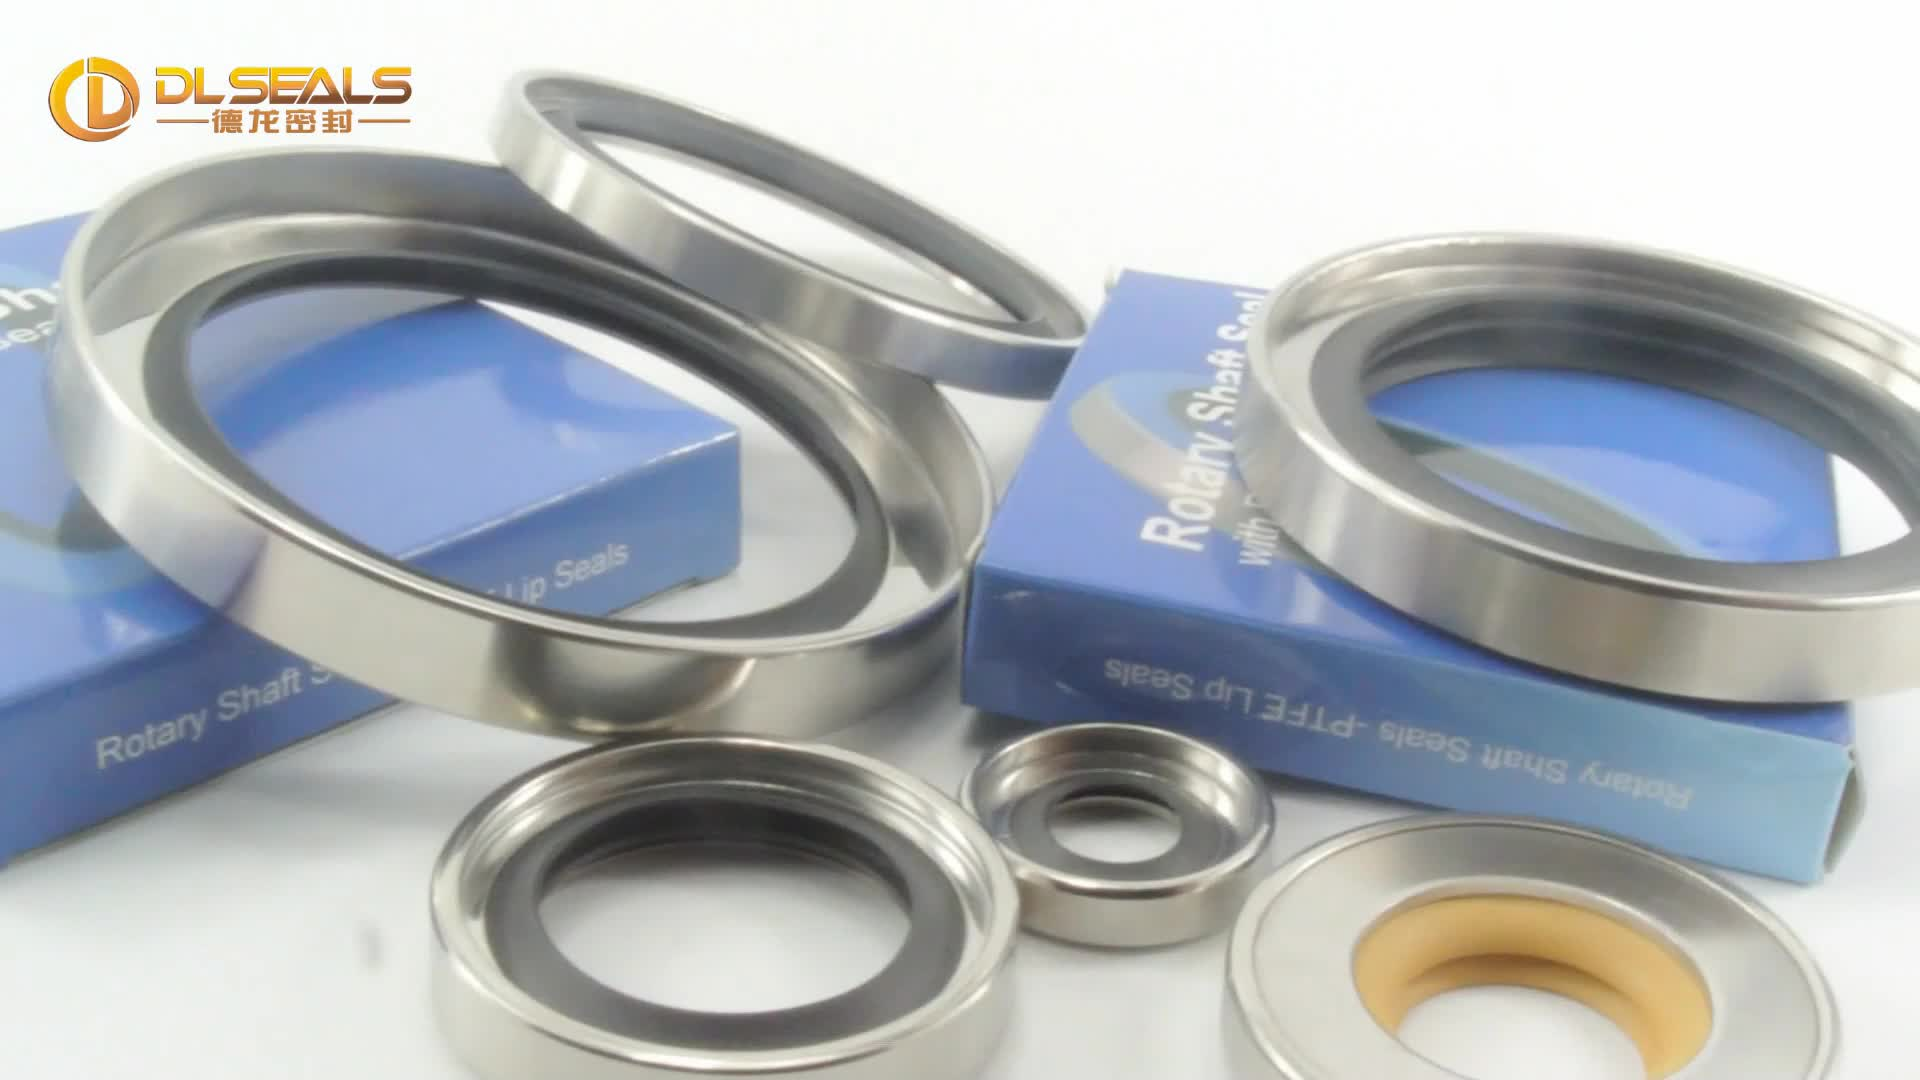 2904-0060-00 PTFE Oil Seals Screw Compressor rotary lip seals Rotary Shaft Seals